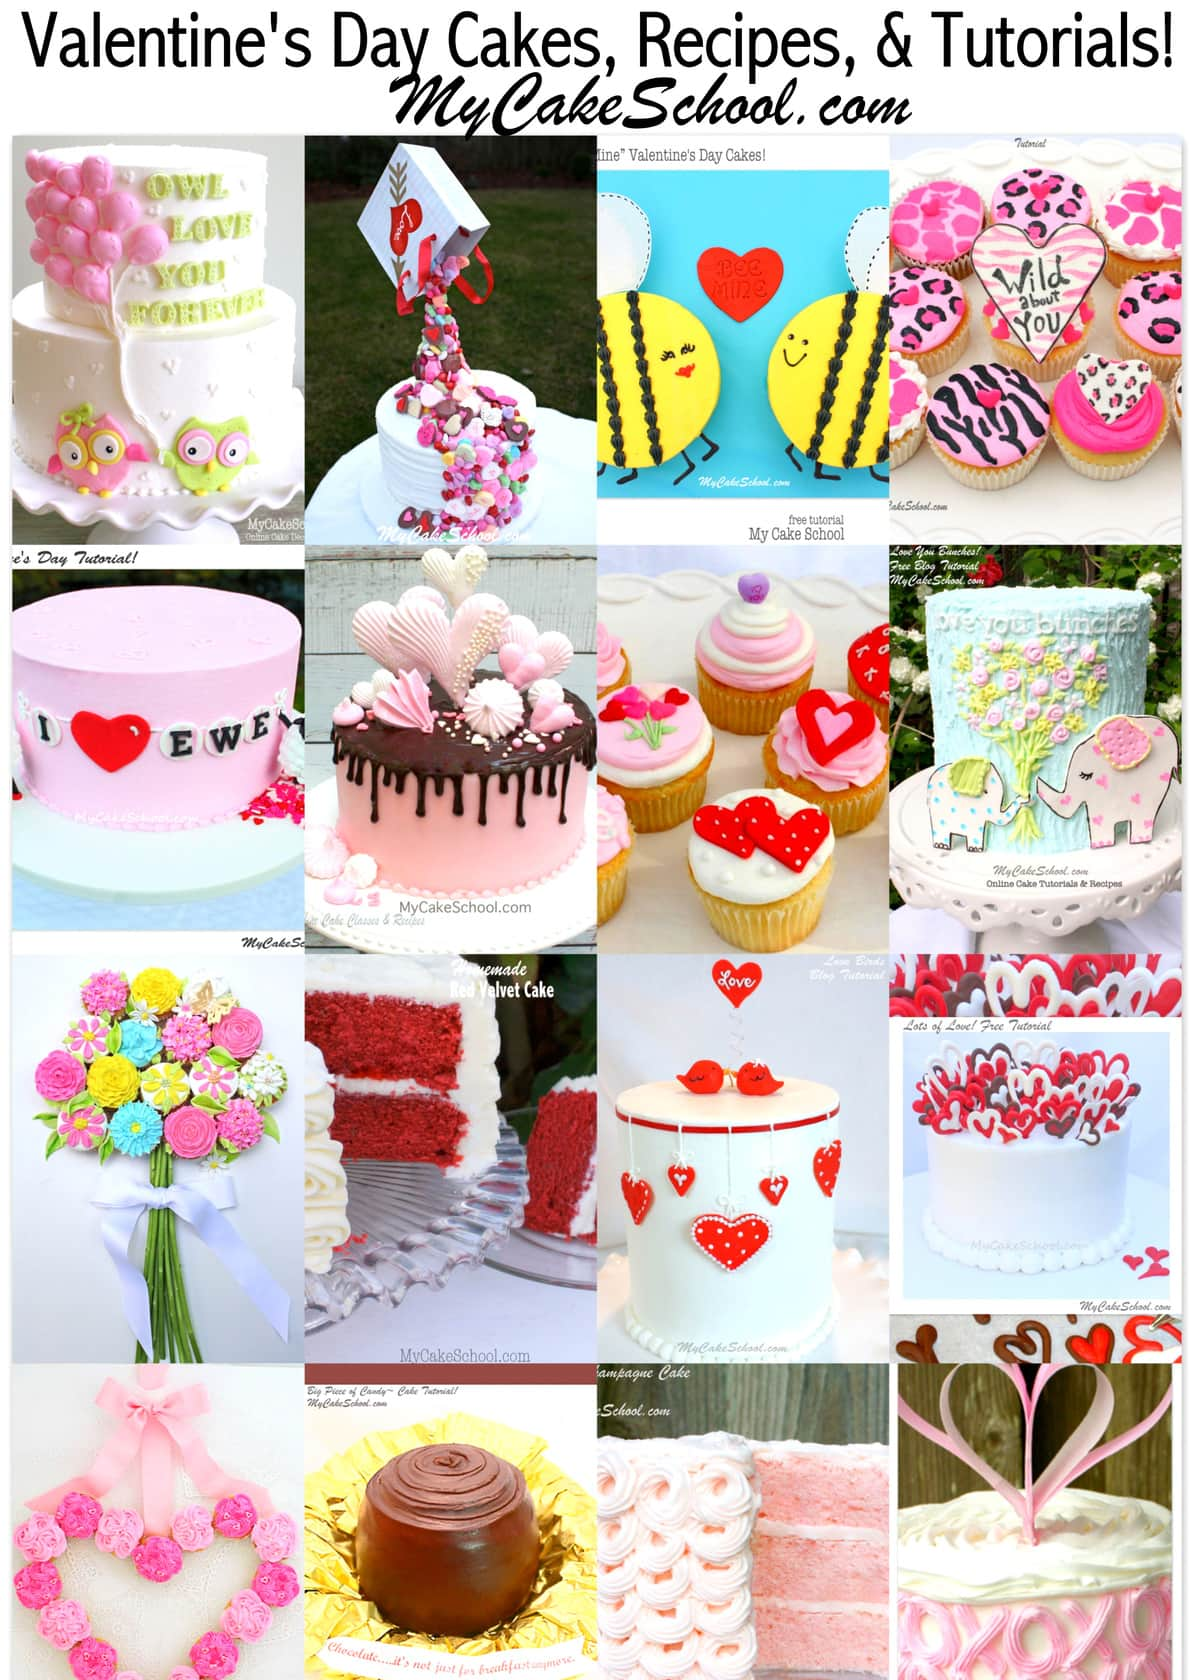 Roundup of the BEST Valentine's Day Cakes, Tutorials, Recipes, and Ideas!